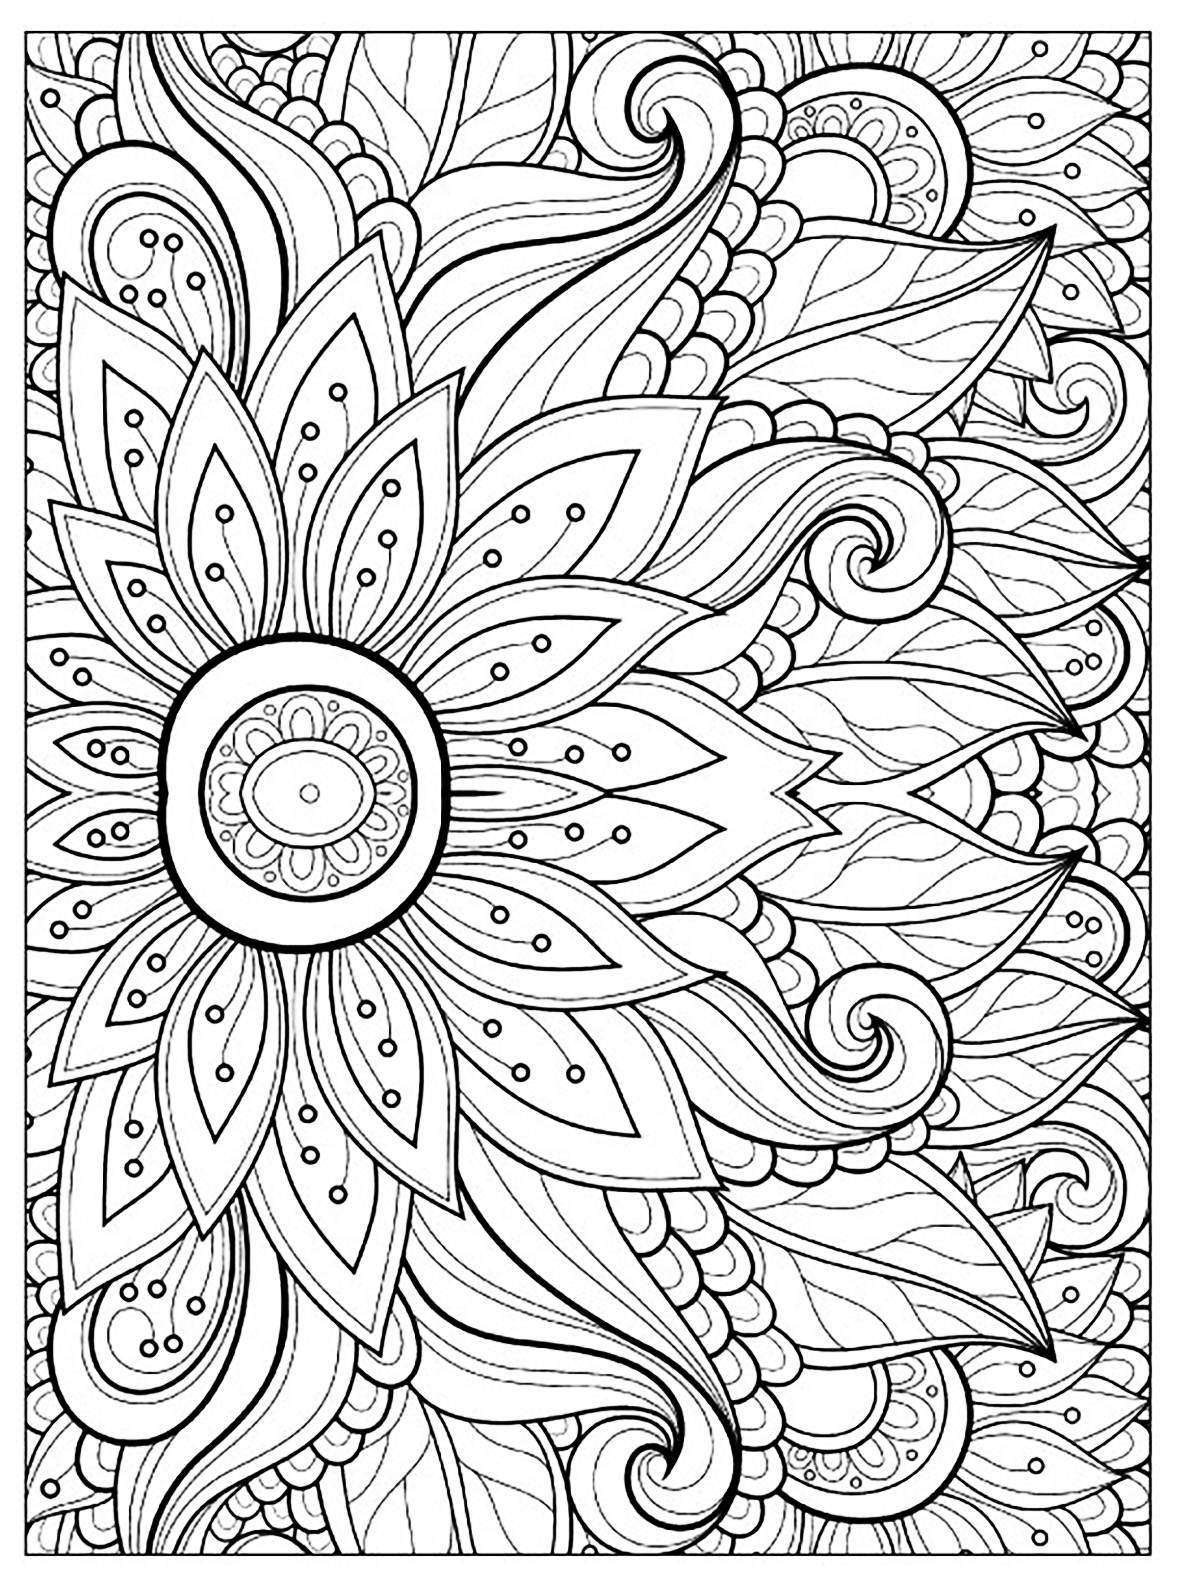 Flowers and vegetation - Coloring pages for adults ... | colouring pages for adults flowers